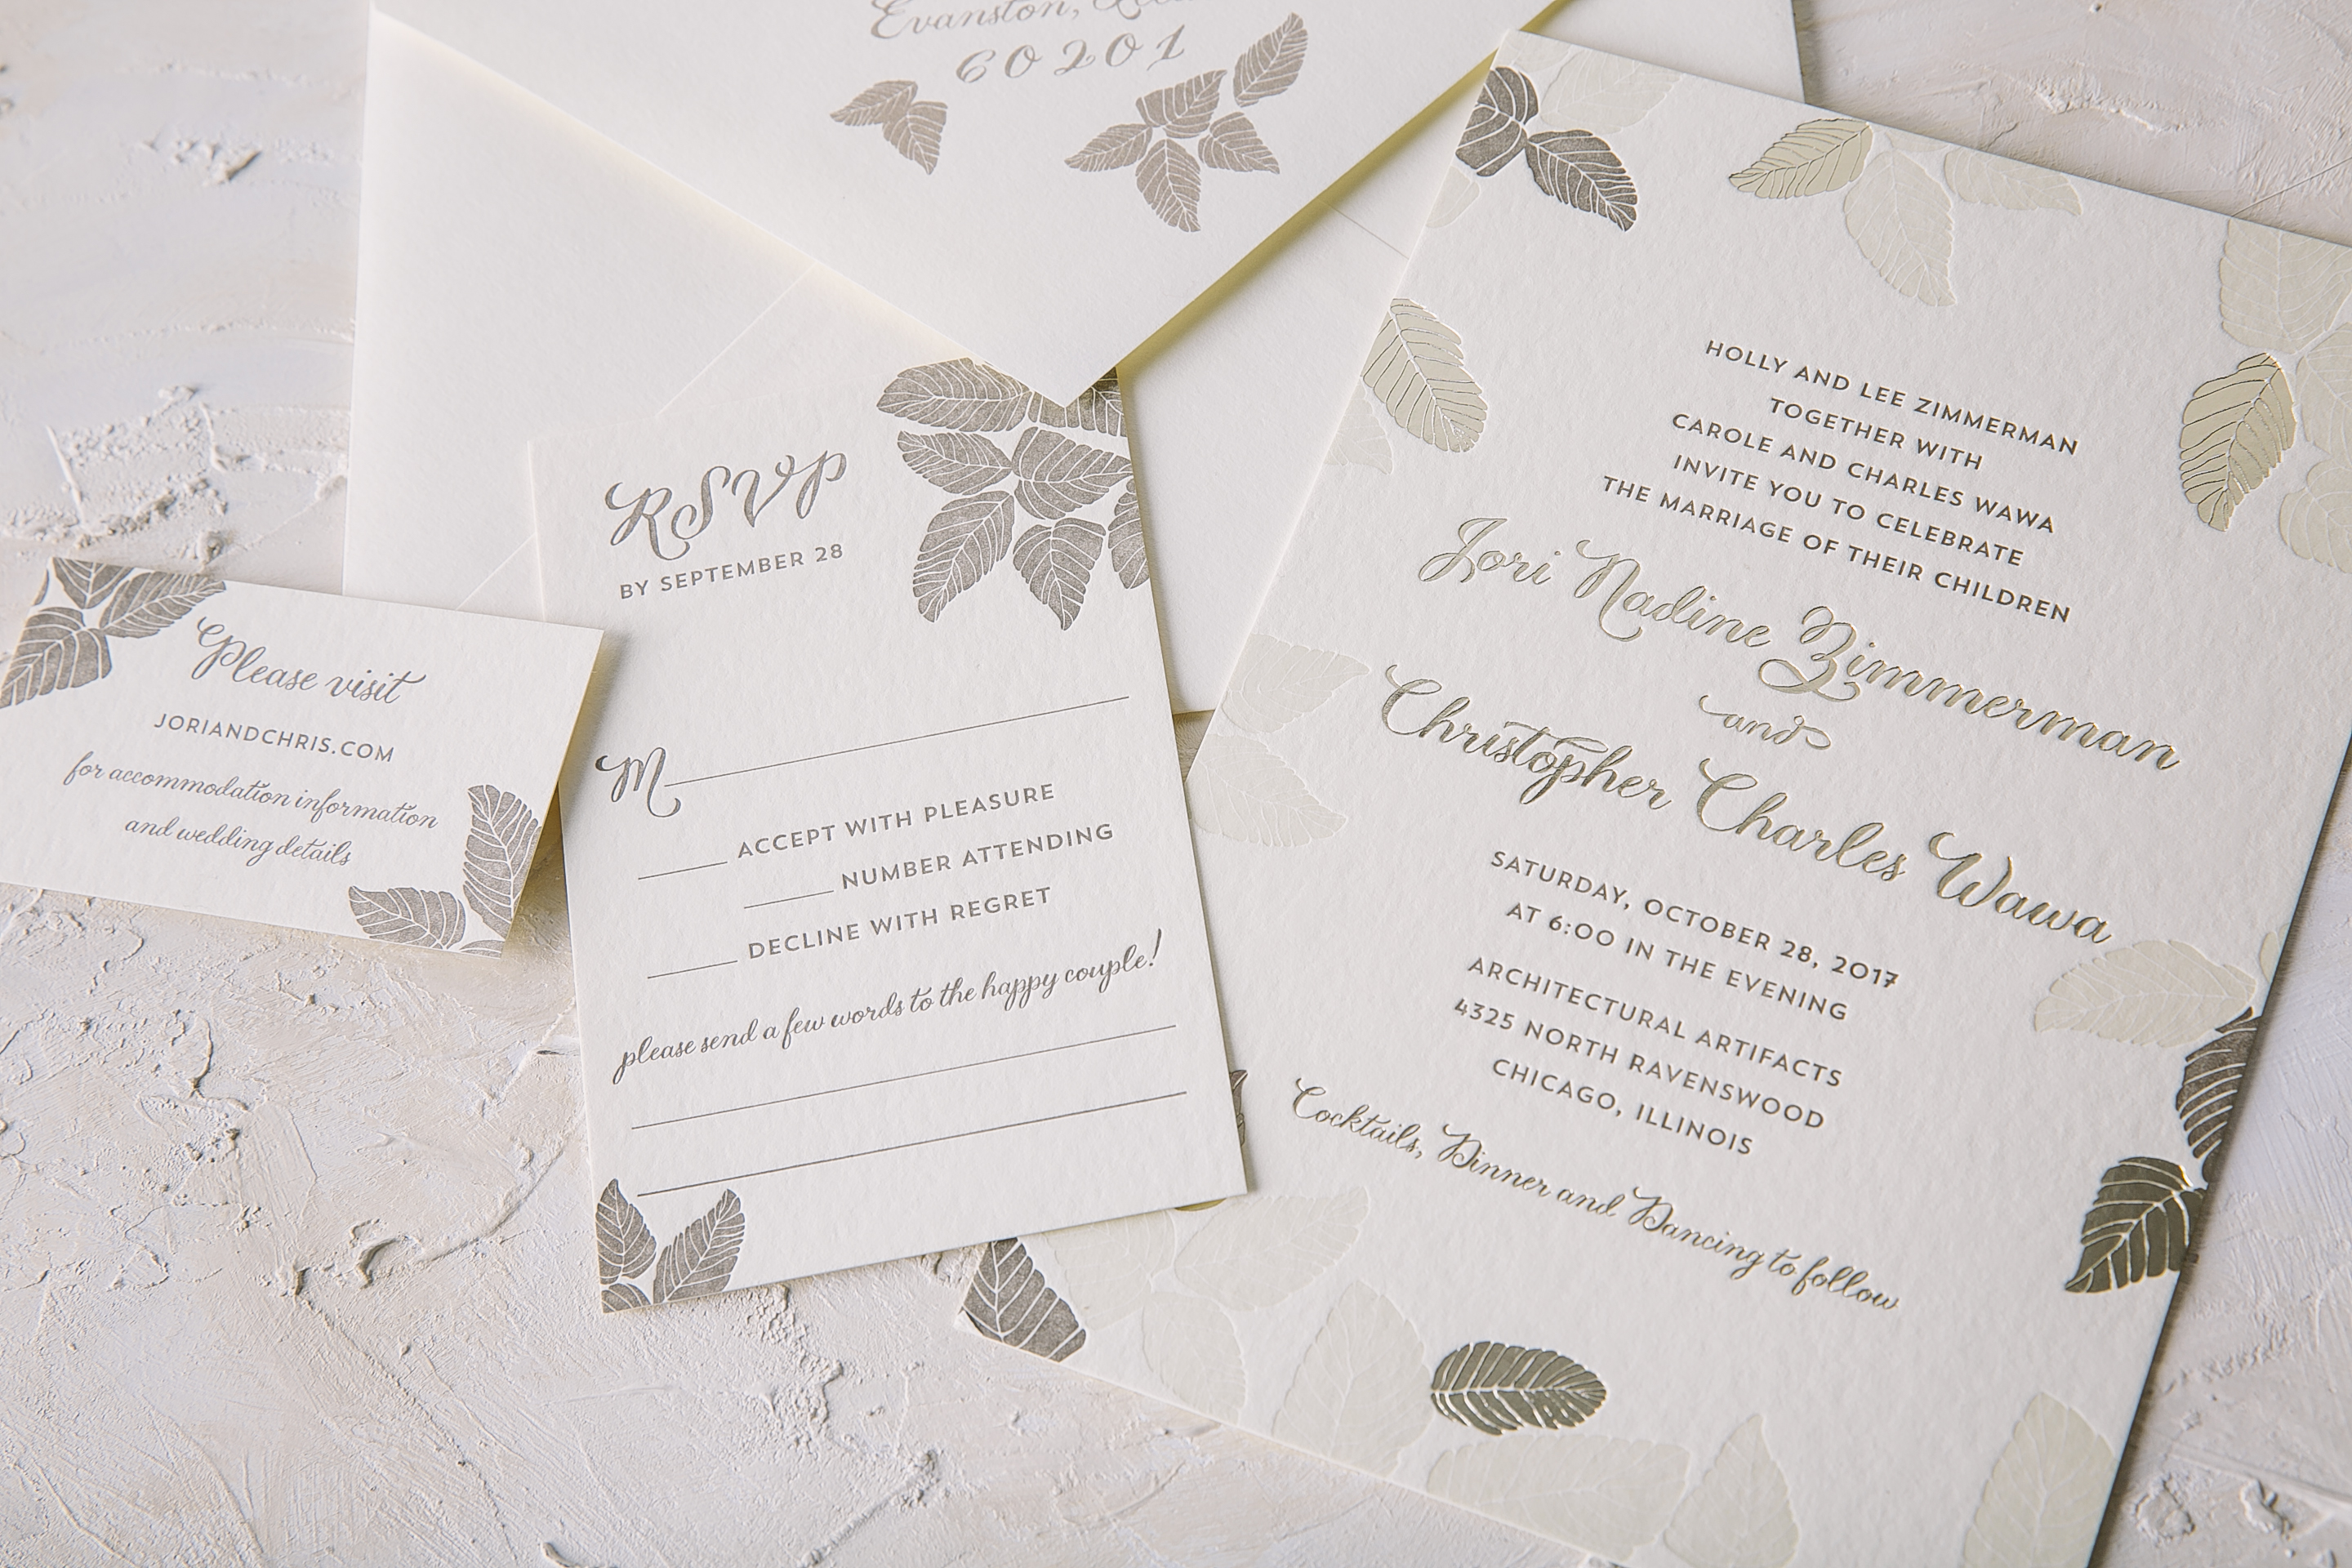 Chic Rustic Flair From Smock Taupe Letterpress Wedding Invitations Scotland Letterpress Wedding Invitations Brisbane Refined Letterpress Wedding Invitations wedding invitation Letterpress Wedding Invitations